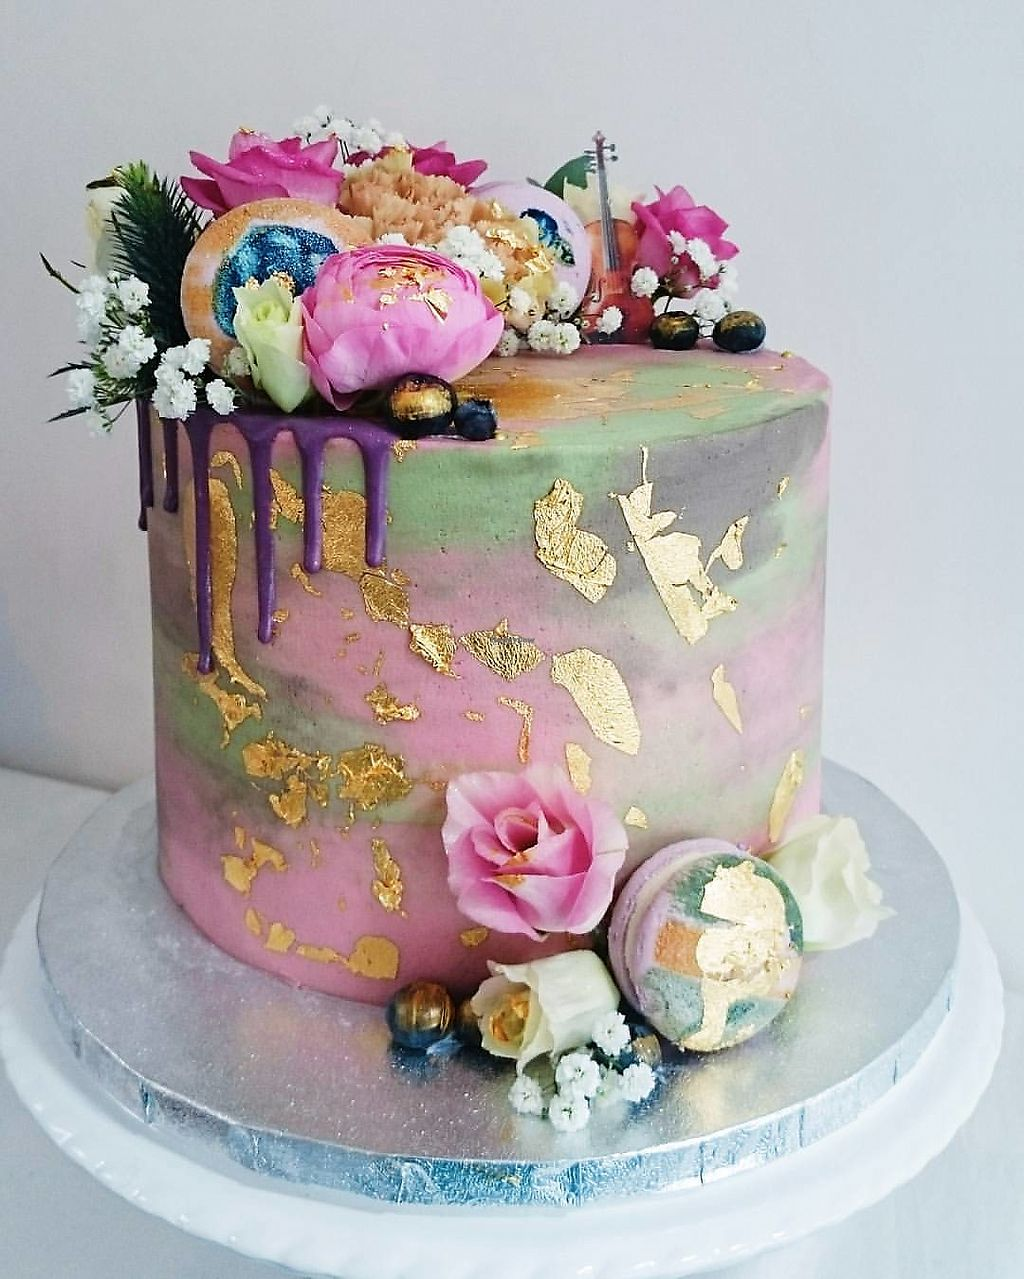 """Photo of Vic's Vegan Bakes  by <a href=""""/members/profile/VicBlandford"""">VicBlandford</a> <br/>Vegan celebration cake - Vic's Vegan Bakes, Hereford <br/> July 31, 2017  - <a href='/contact/abuse/image/97391/287079'>Report</a>"""